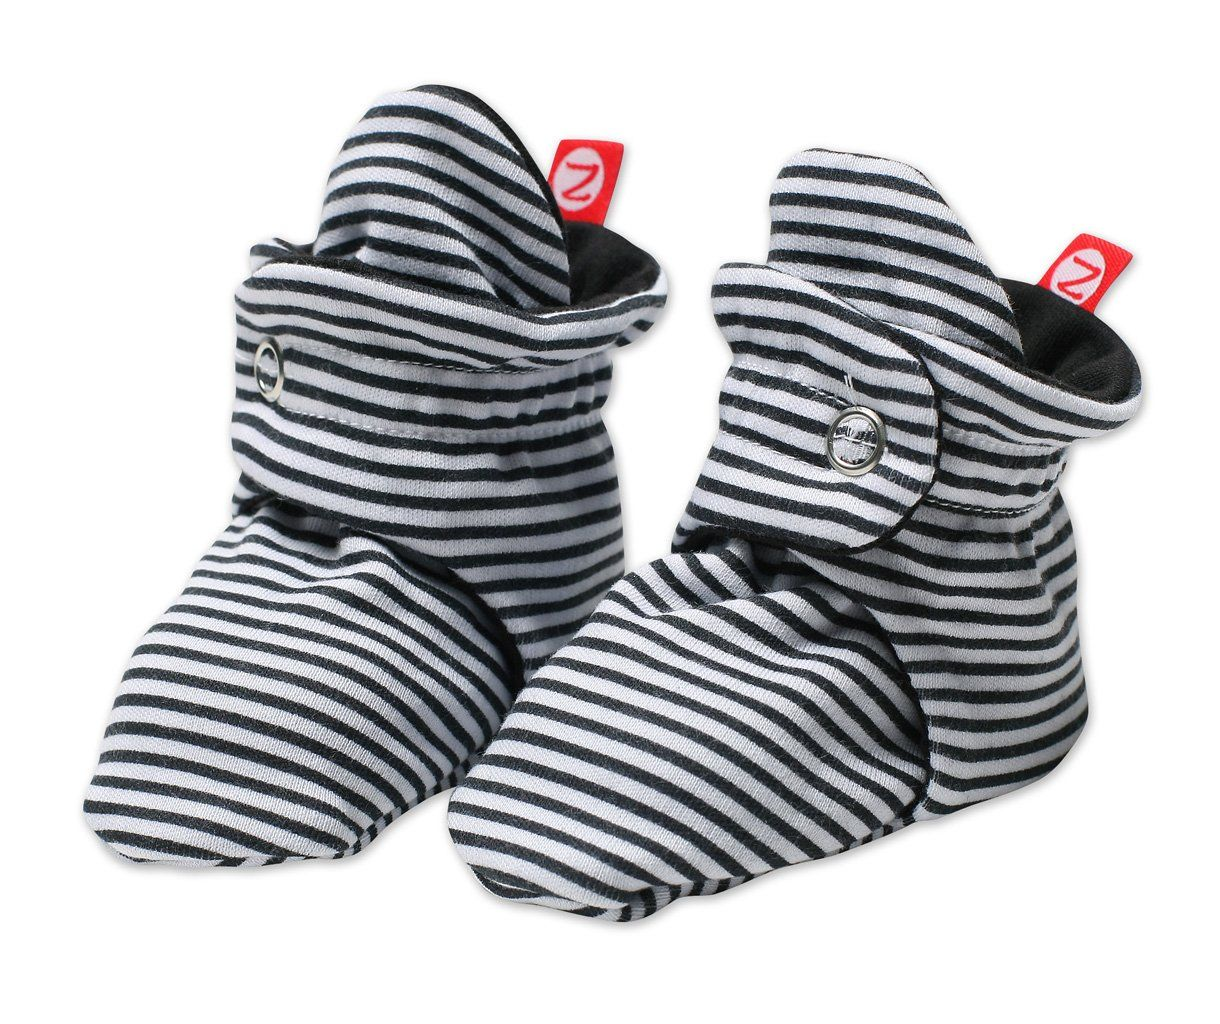 35b82bcf5 Amazon.com: Zutano Baby Girls' Candy Stripe Bootie: Infant And Toddler  Socks: Clothing